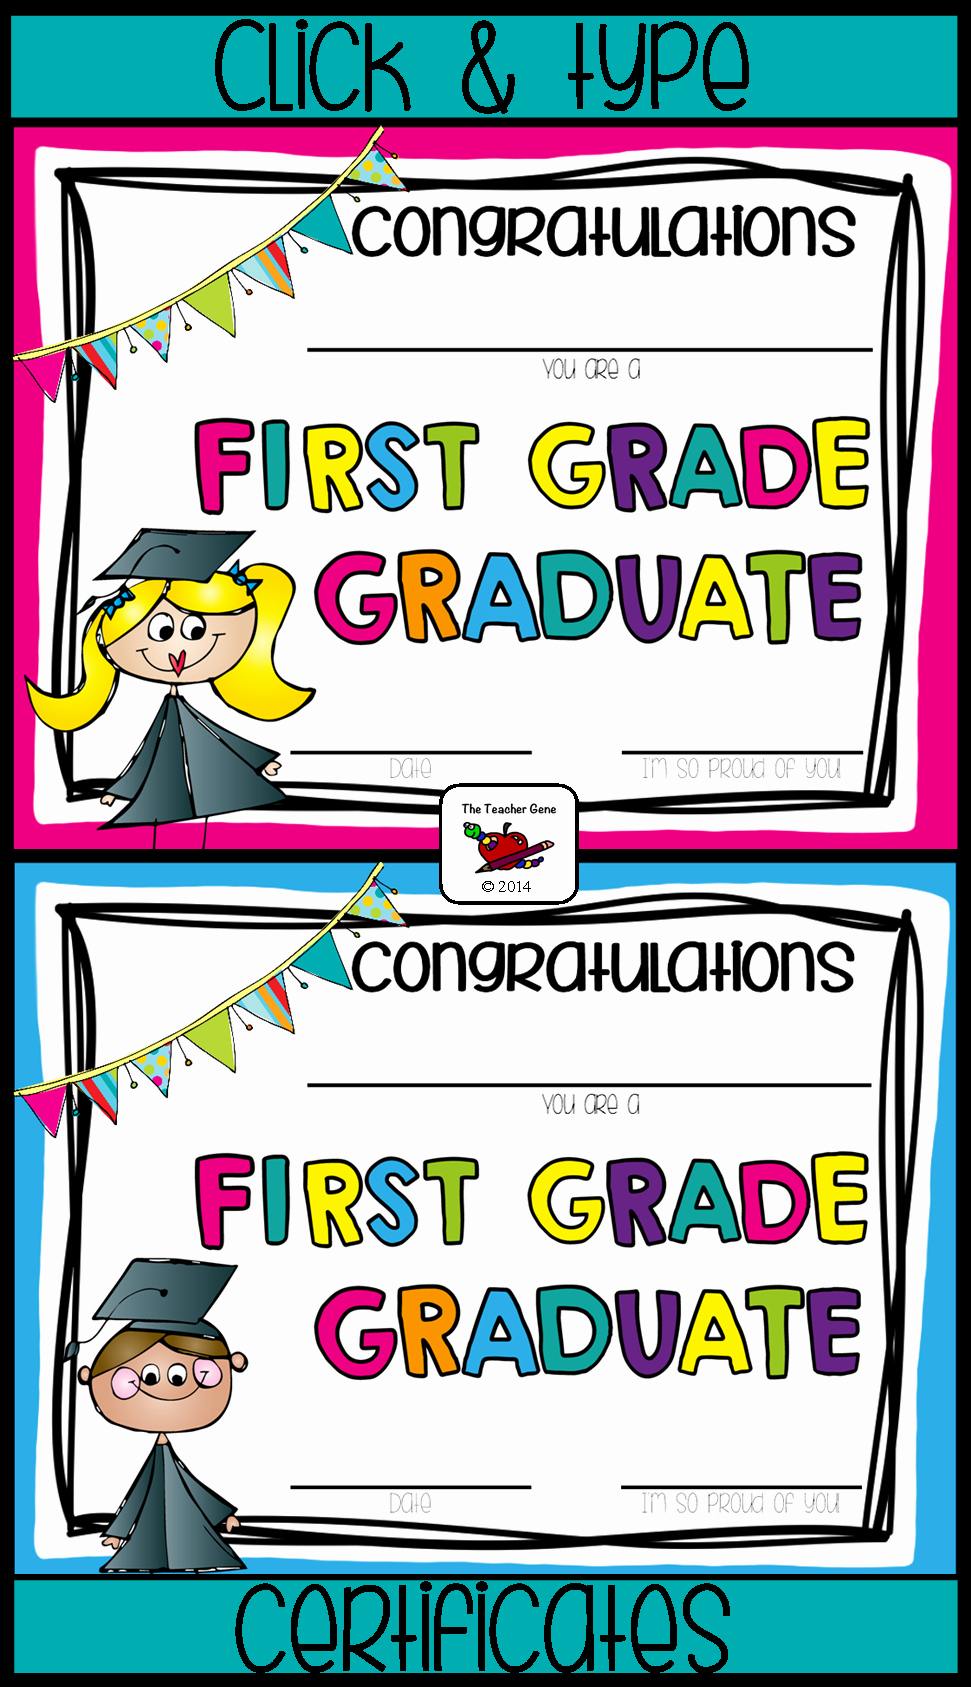 Preschool Certificate Of Completion Best Of First Grade Graduation Certificates & First Grade